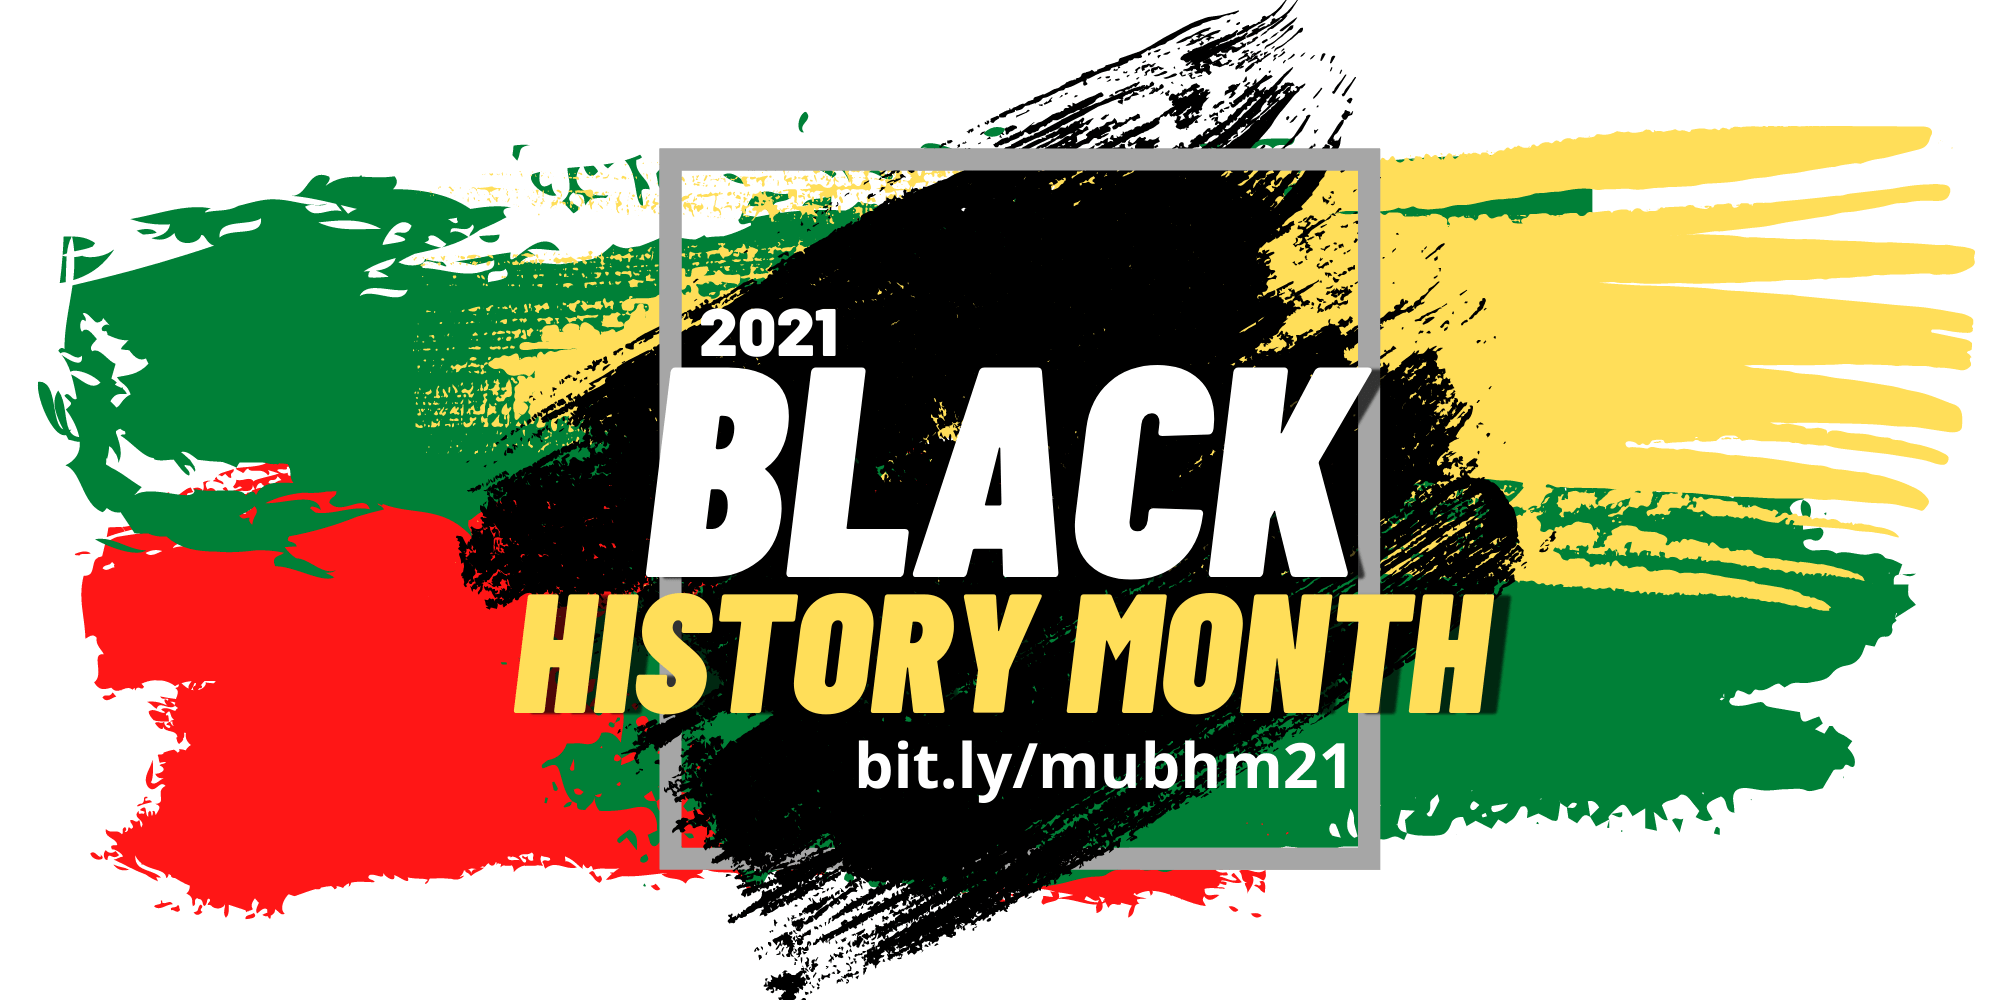 Photo of Robert McAfee, with text reading 2021 Black History Month: Click for detailed image view